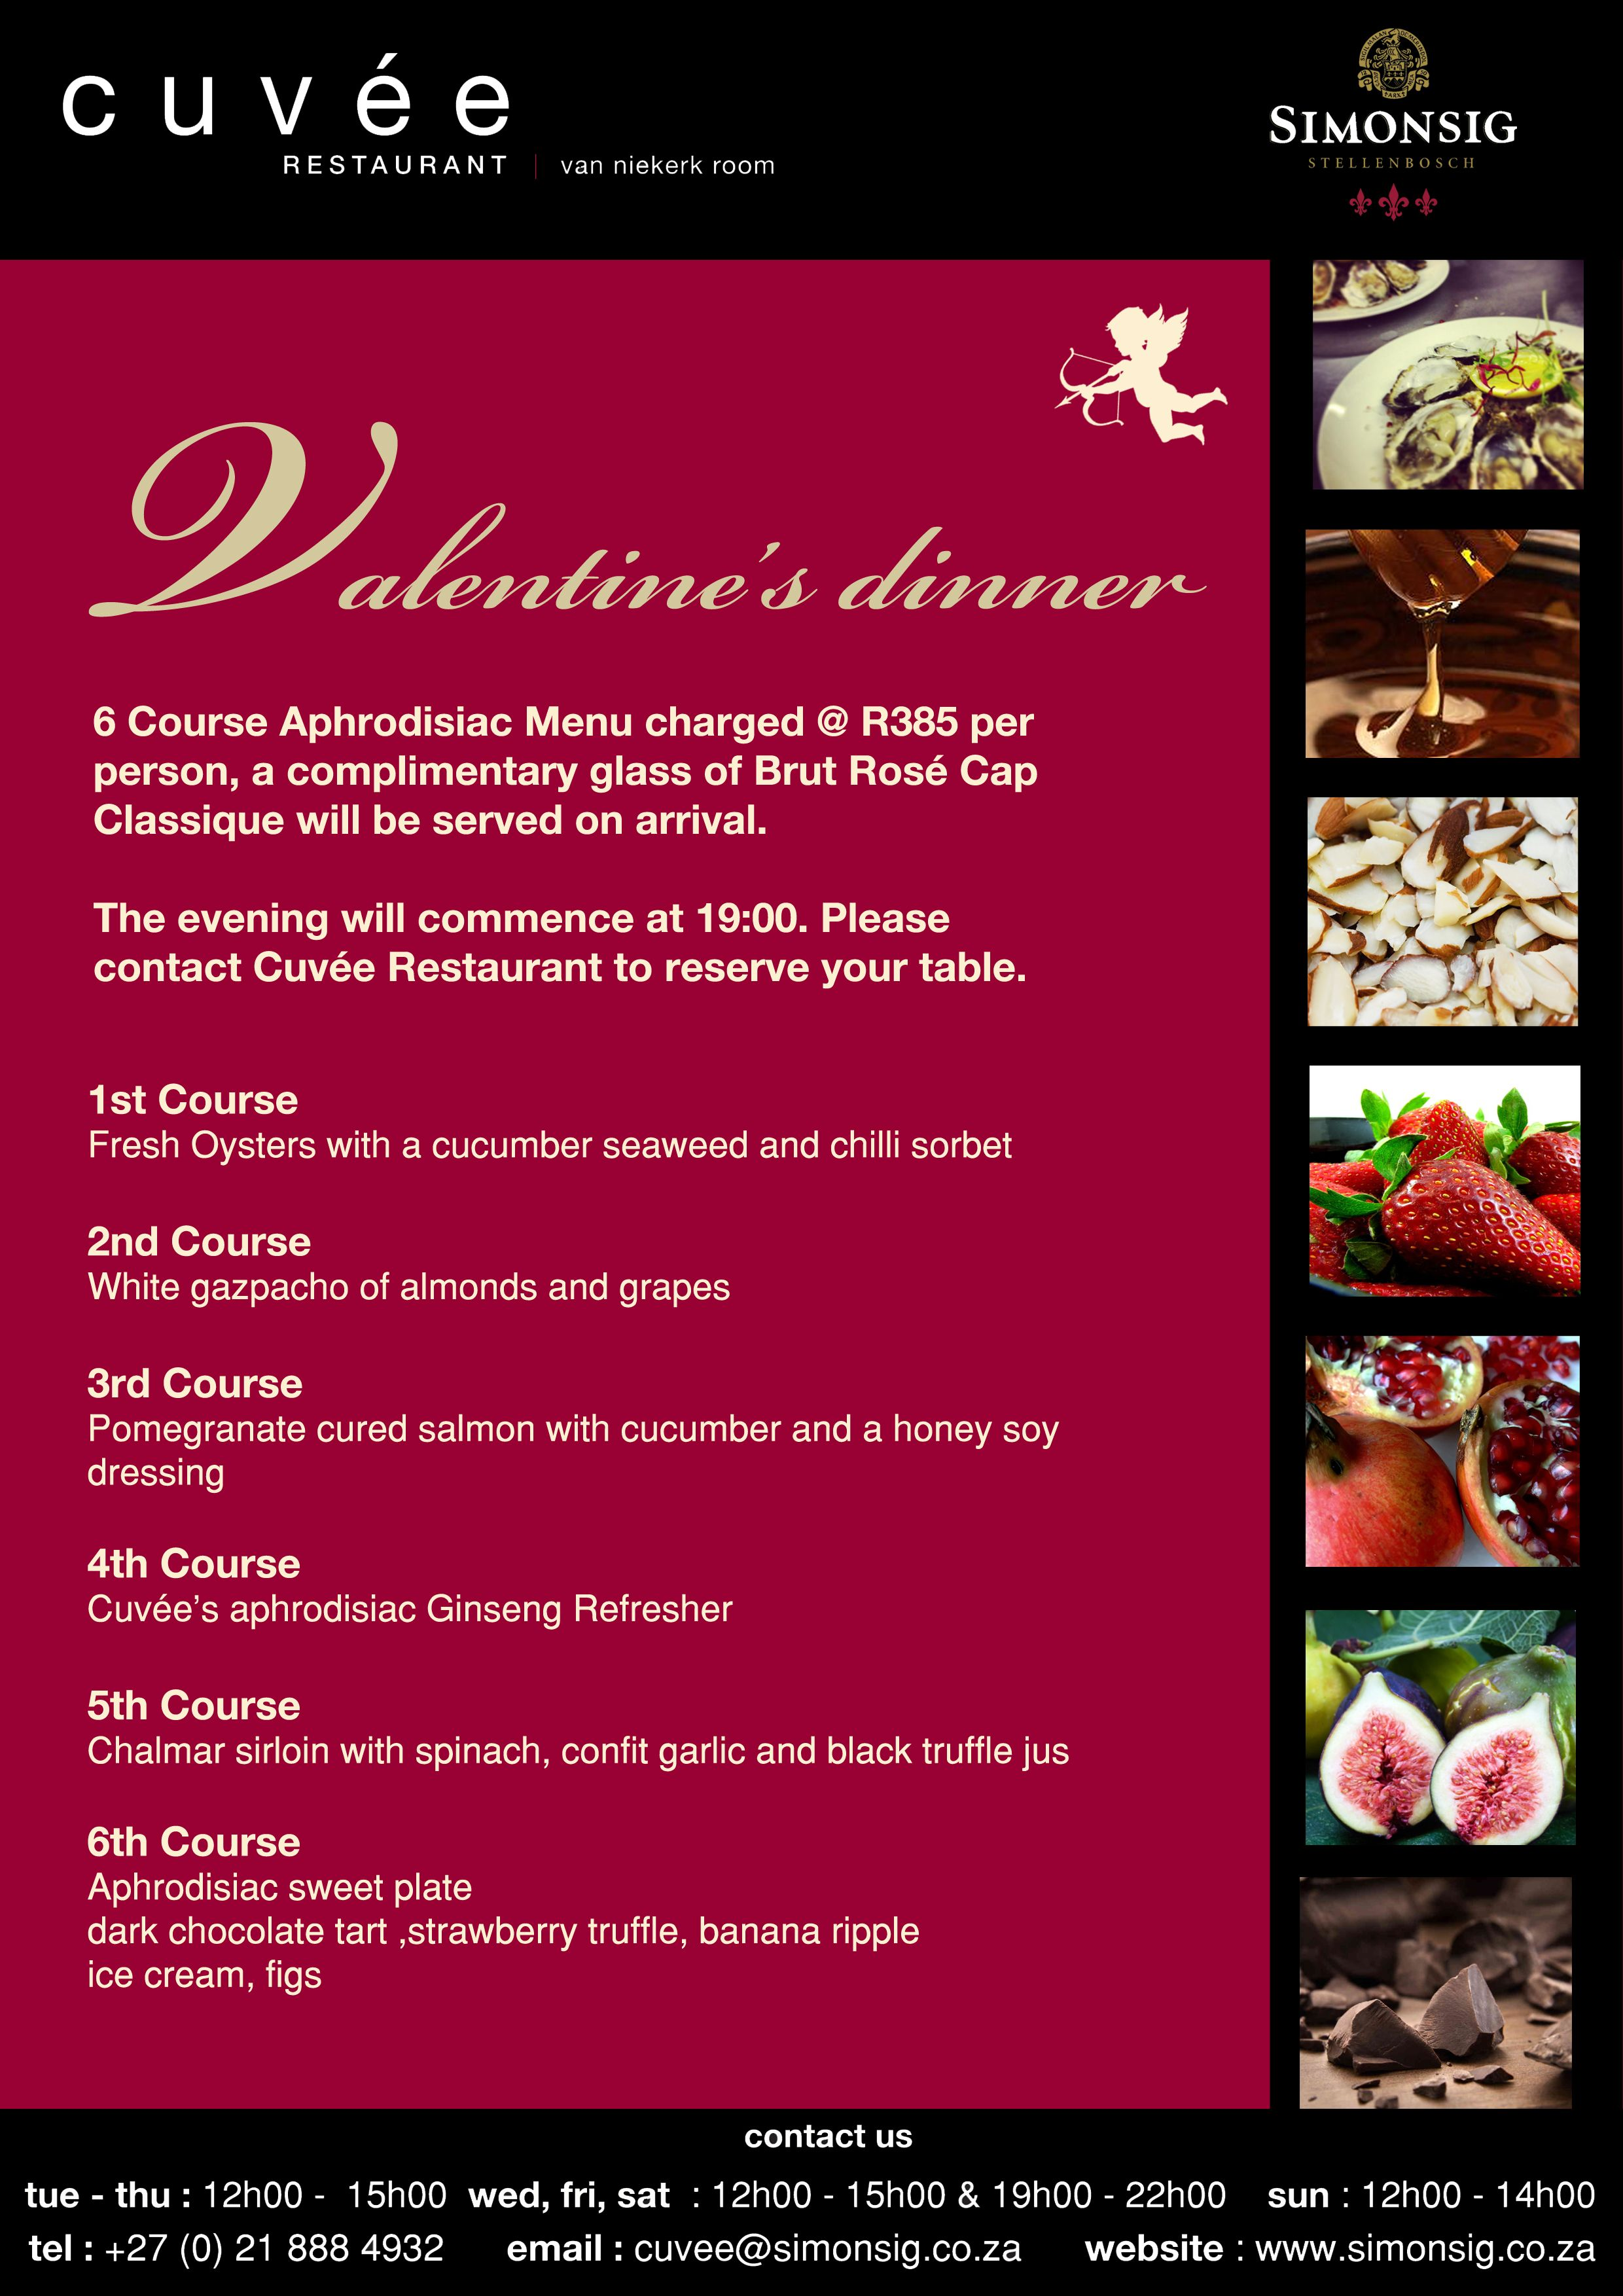 Cuvee Restaurant Presents A Valentine S Day Dinner 6 Course Aphrodisiac Menu Charged R385 Per Person A Complime Valentines Day Dinner Fresh Oysters Dinner